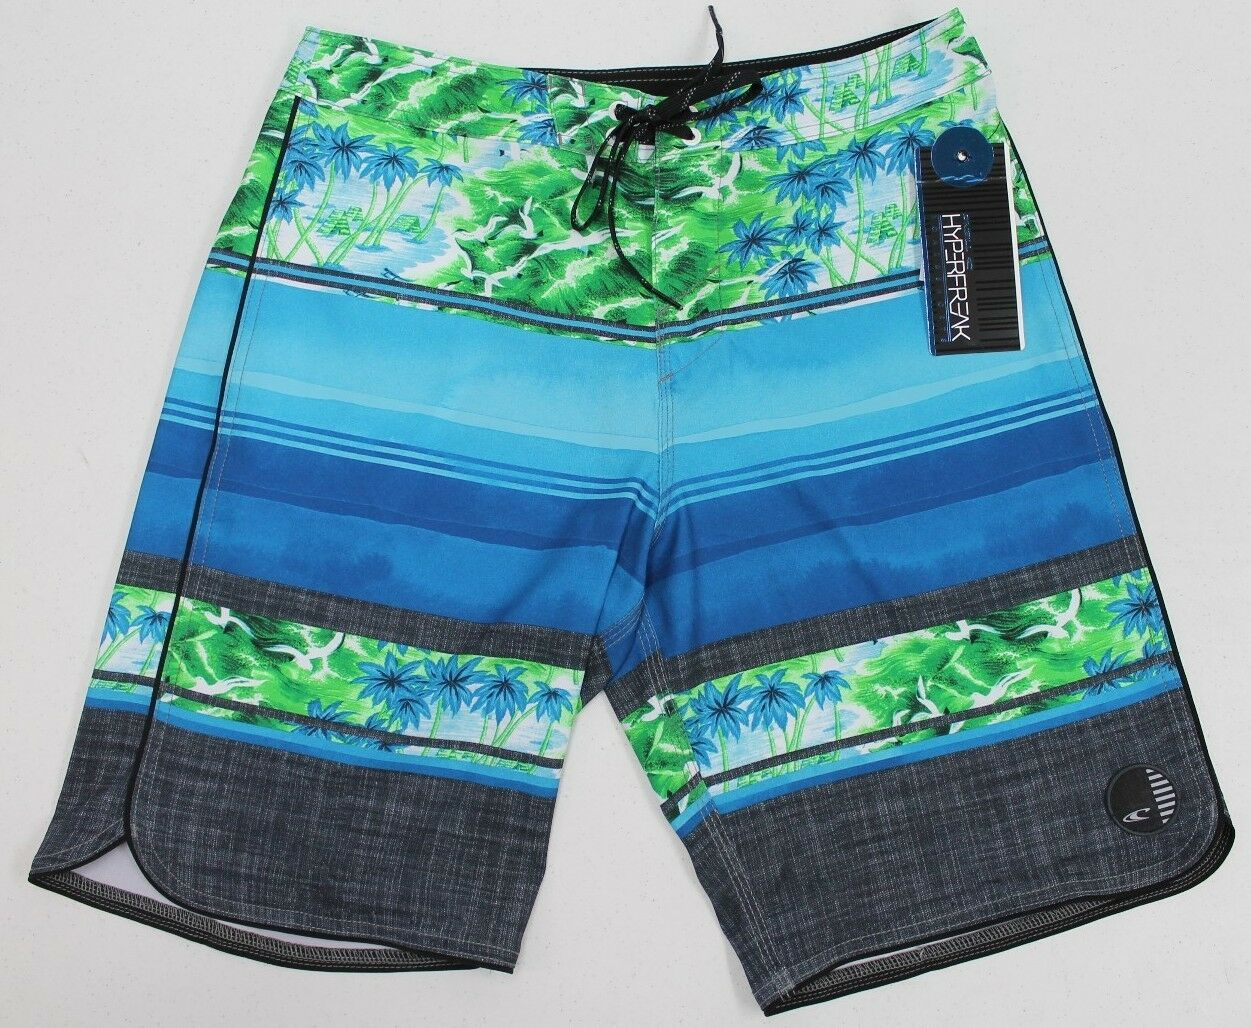 NWT  O'NEILL Ambition Cargo Swim Suit Trunks Mens 30 31  32 36 FAST SHIP NEW